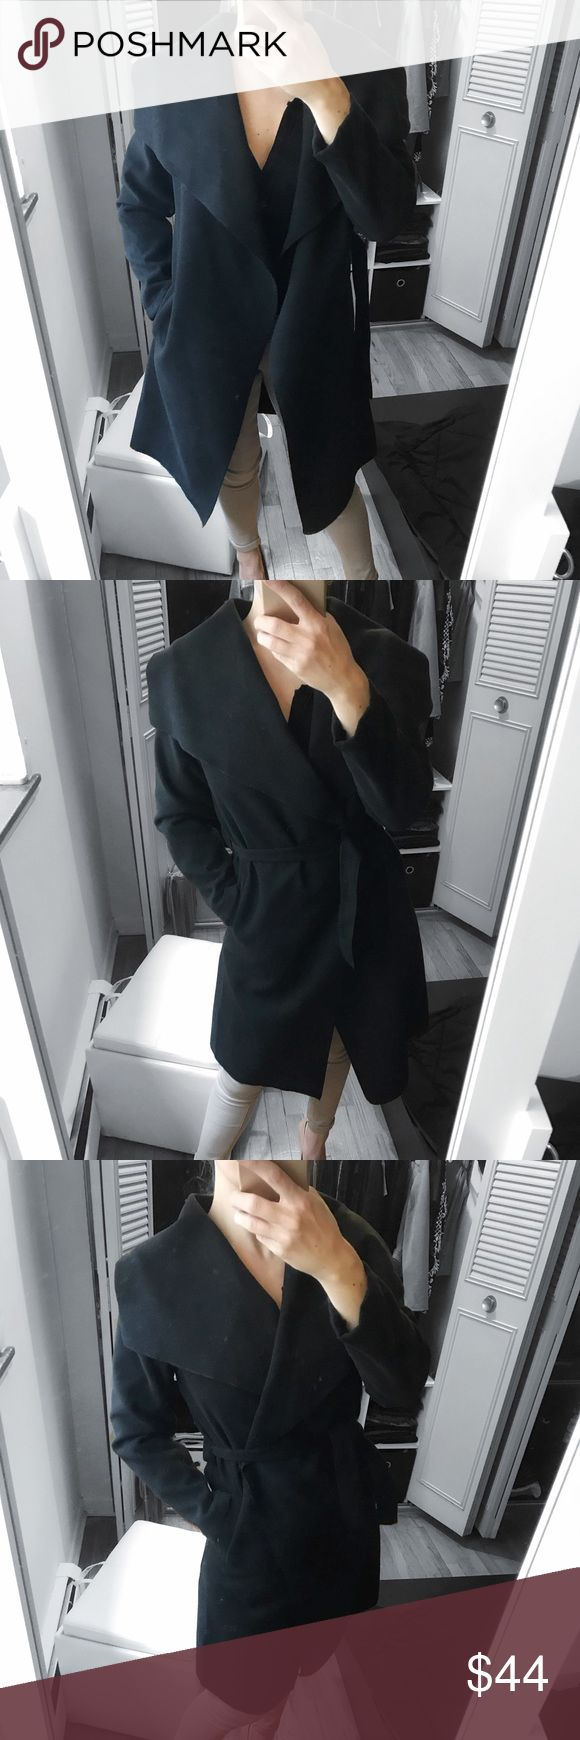 """🔁Black Wrap Waterfall Belt Coat Restocked!   ❥MATERIAL : 80 % Polyester, 20 % Viscose  ❥MEASUREMENTS: One size :  20"""" pit to pit , 36 """" lenght 23 """" Sleeve  ❥FEATURES : waterfall collar, open front, simple long sleeves, double pocket sides, belted waist, longline design, soft finish, lightweight , wool look fabric  ✦Modeling One Size : I'm 5' 5"""" and 132 lbs   ( bust 34 